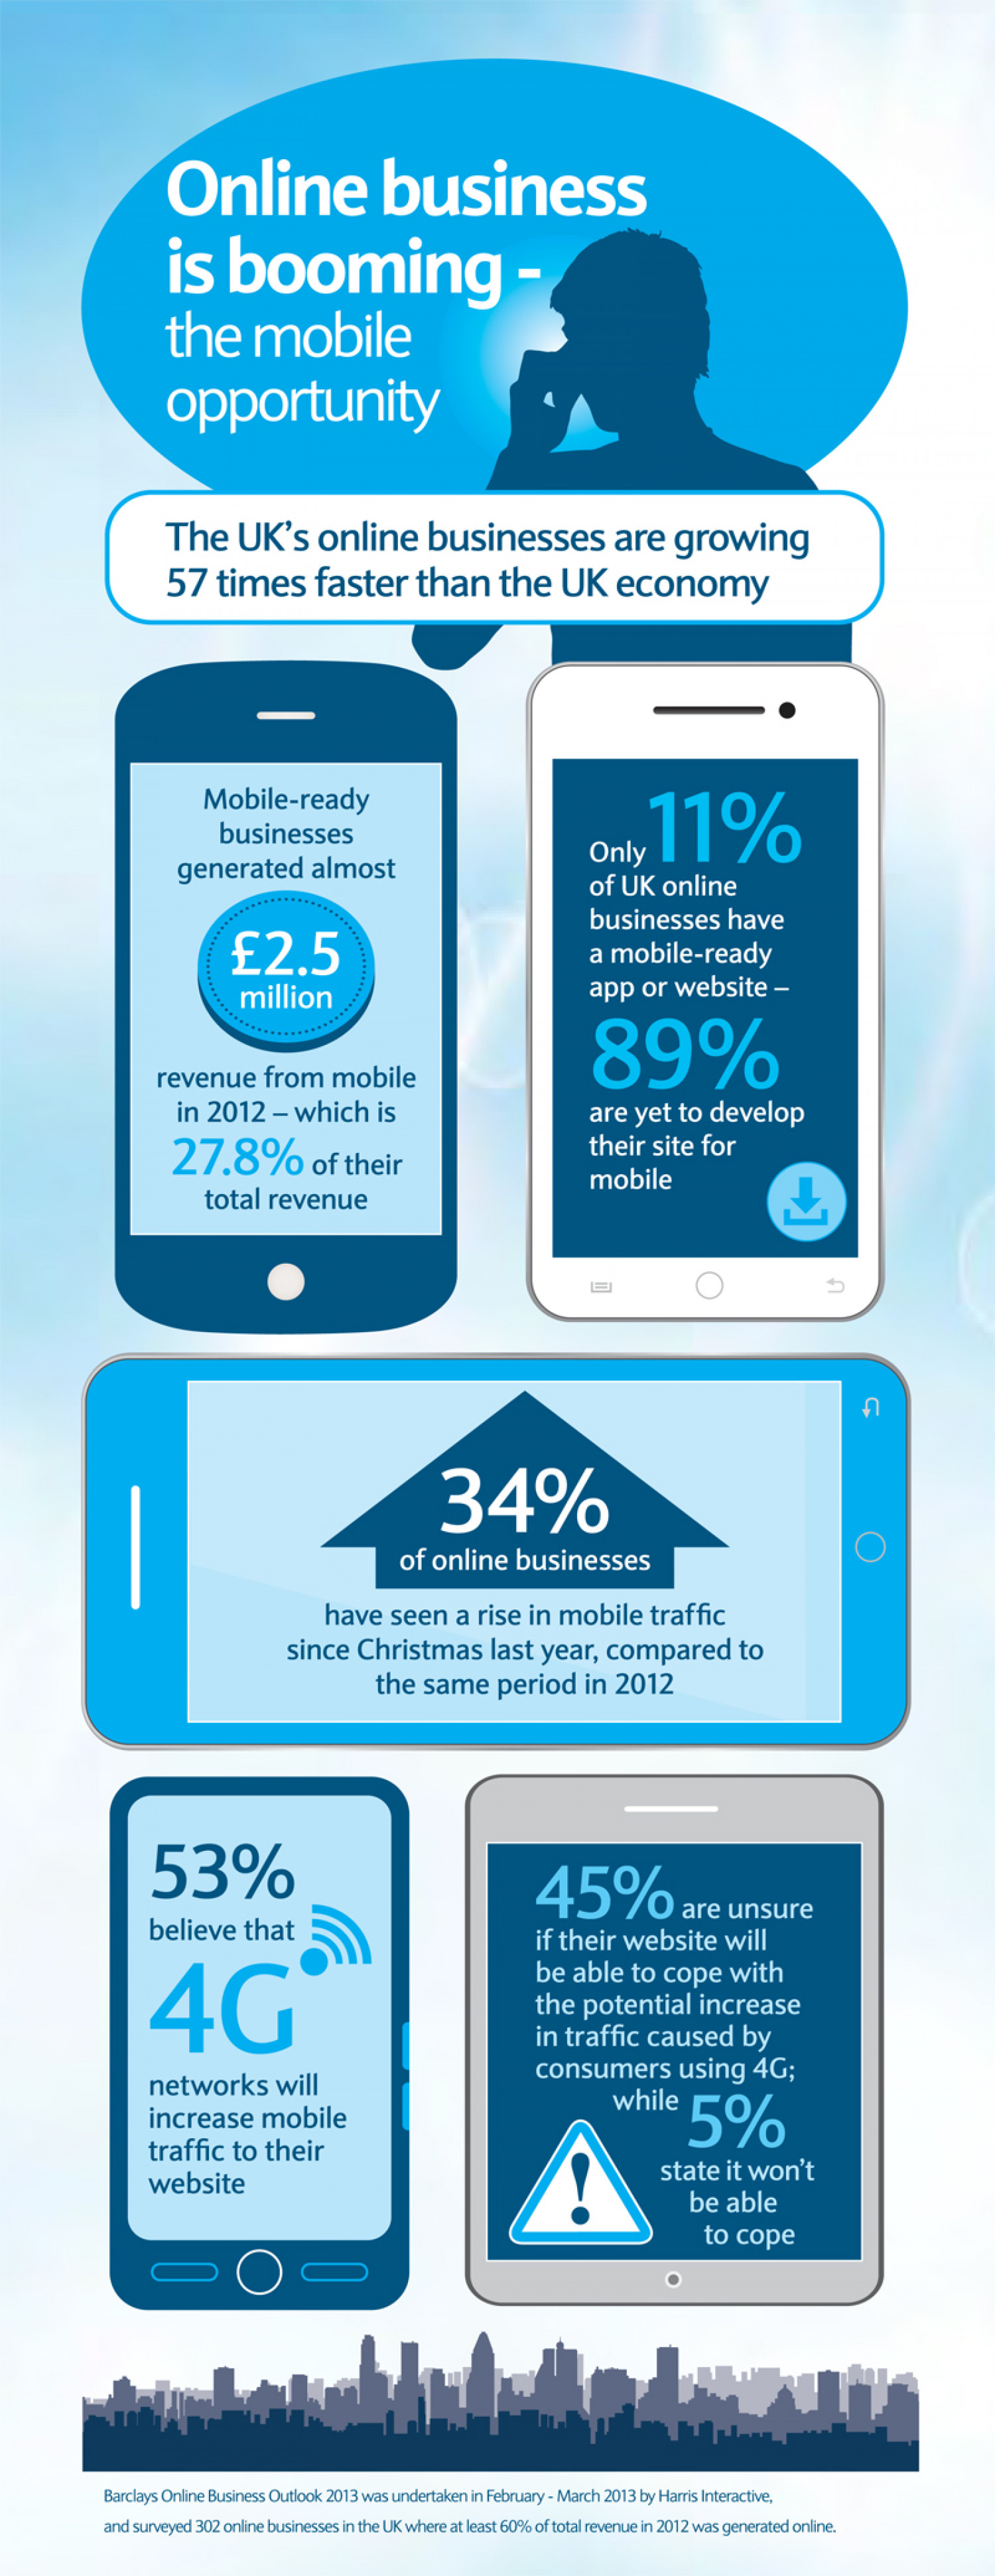 UK online business booming, but 9 in 10 yet to develop site for mobile Infographic